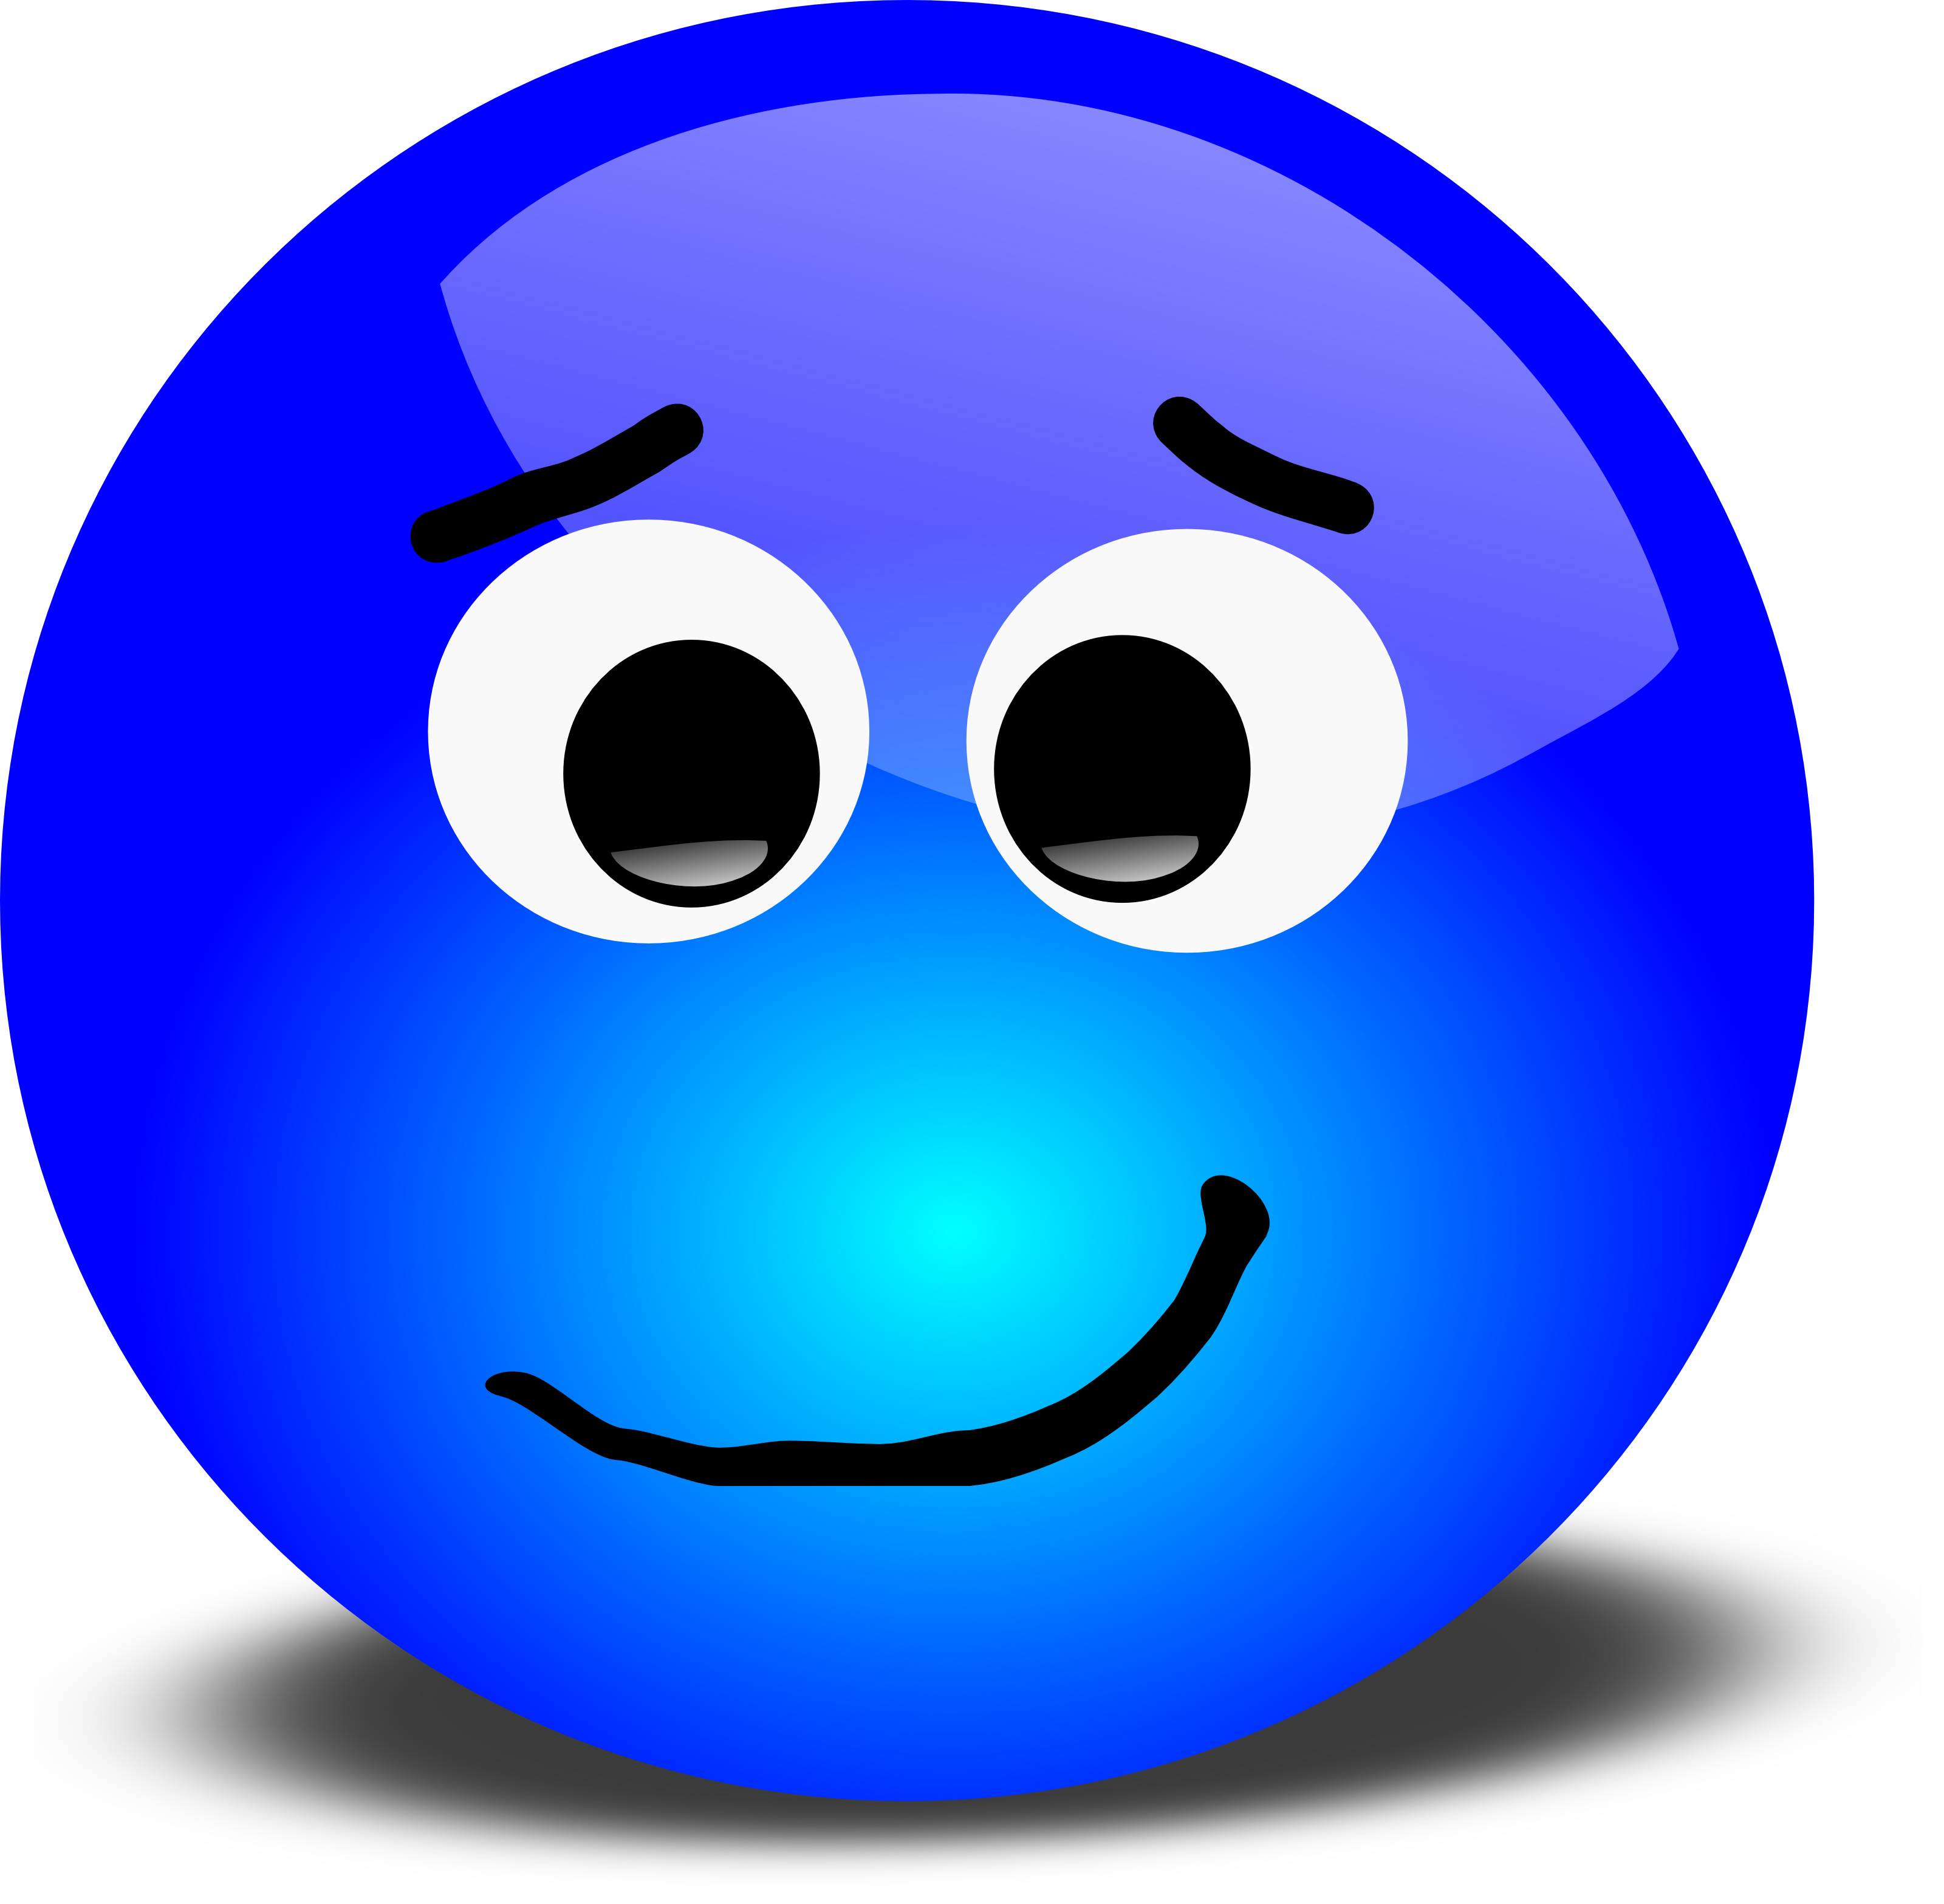 Straight Line Smiley Face Clip Art : Image gallery serious smiley face